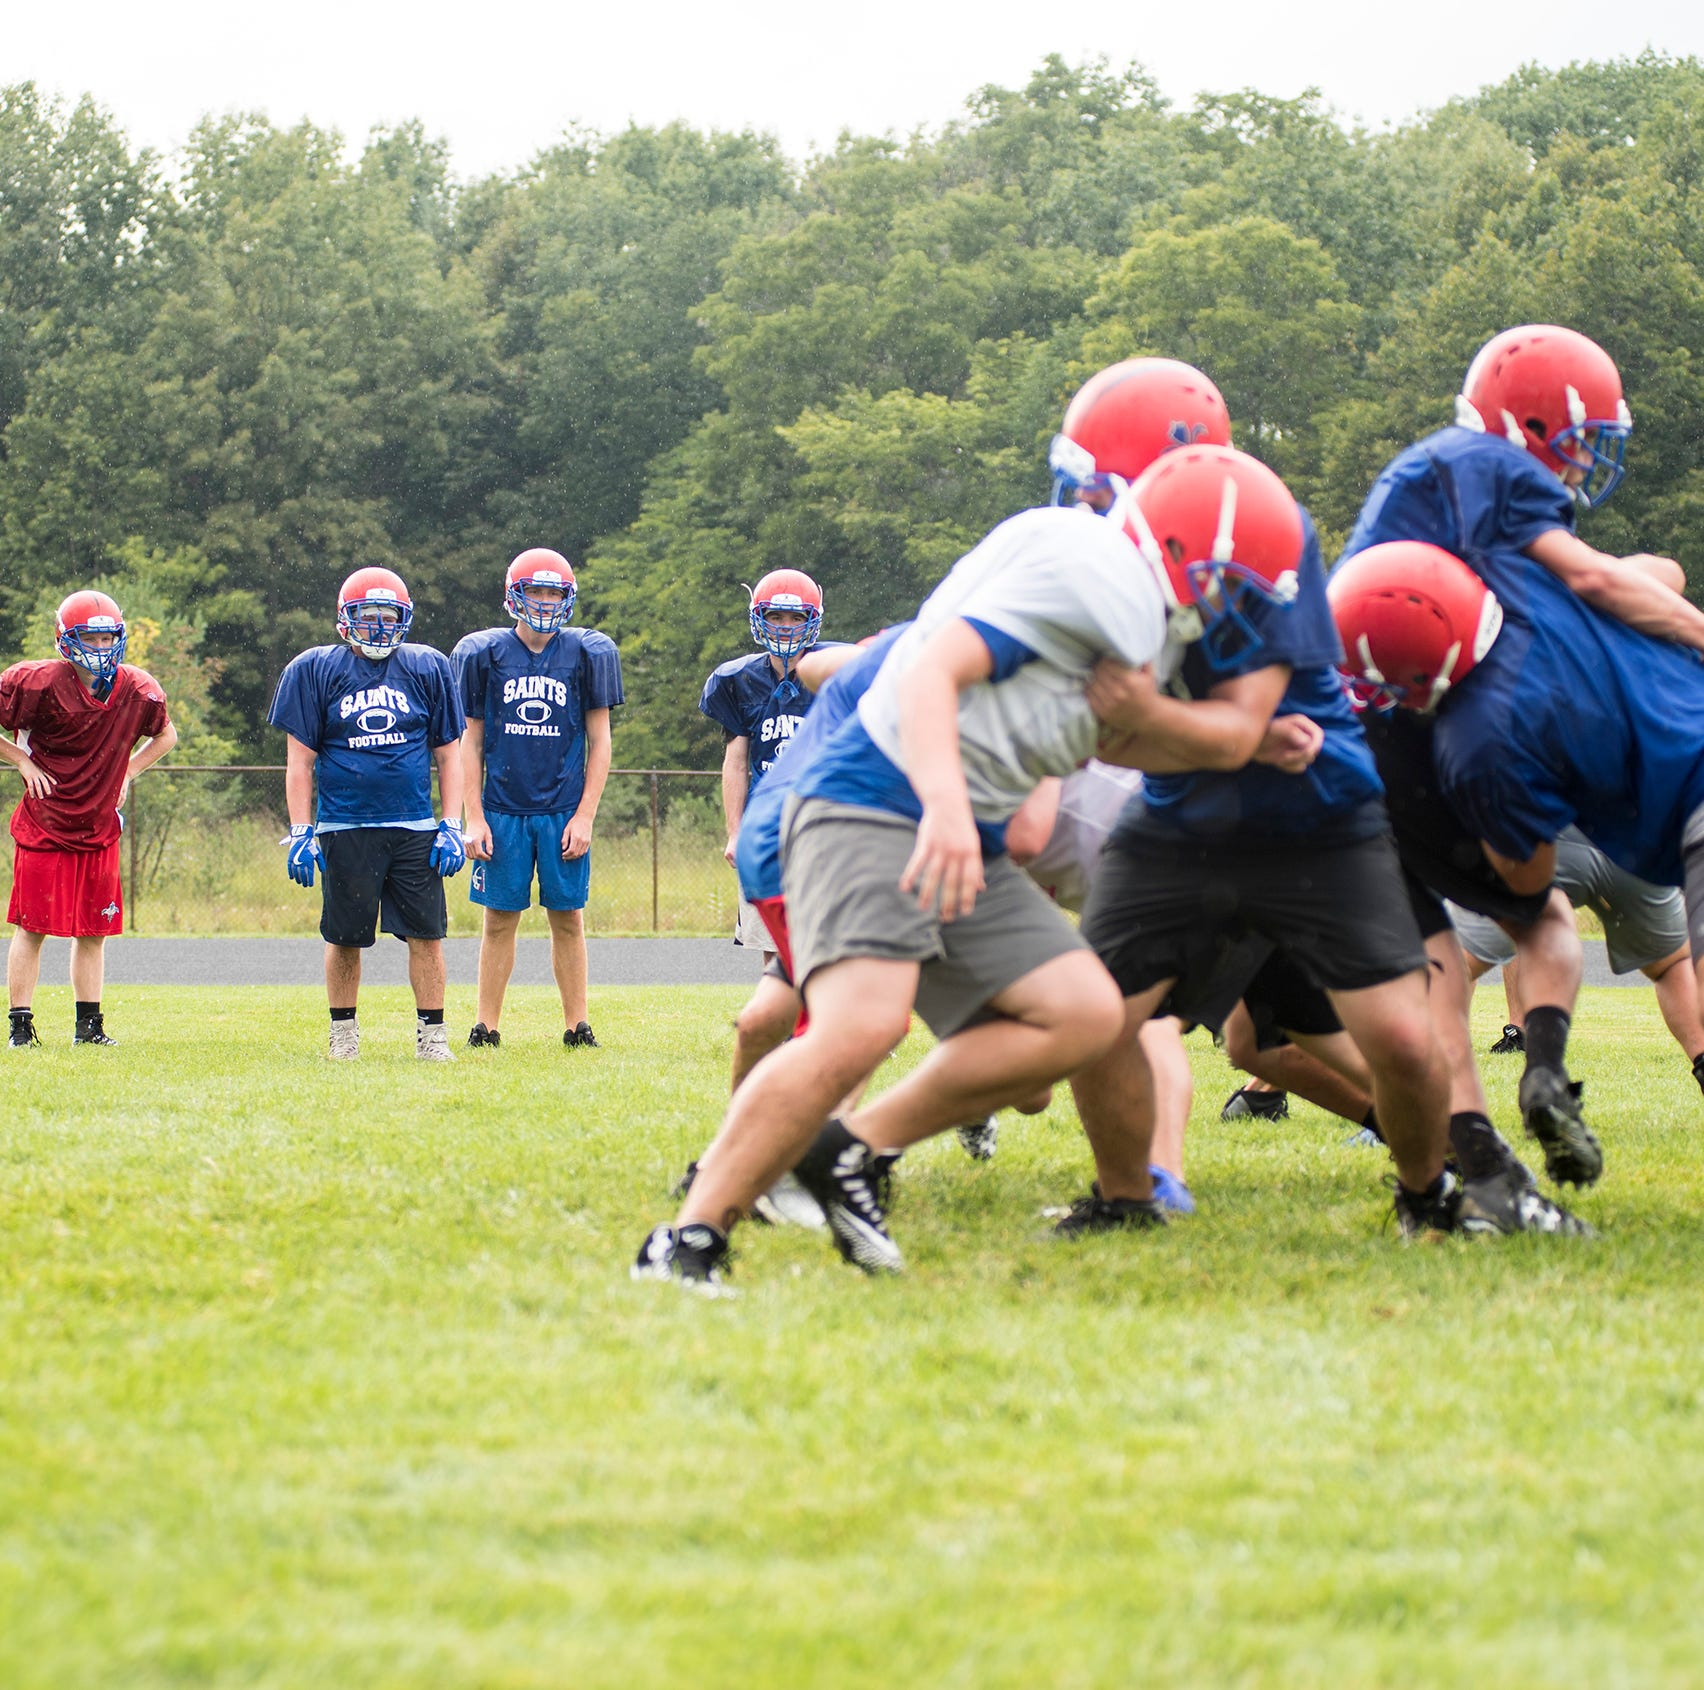 St. Clair seeks to build a culture in run-up to 2018 season